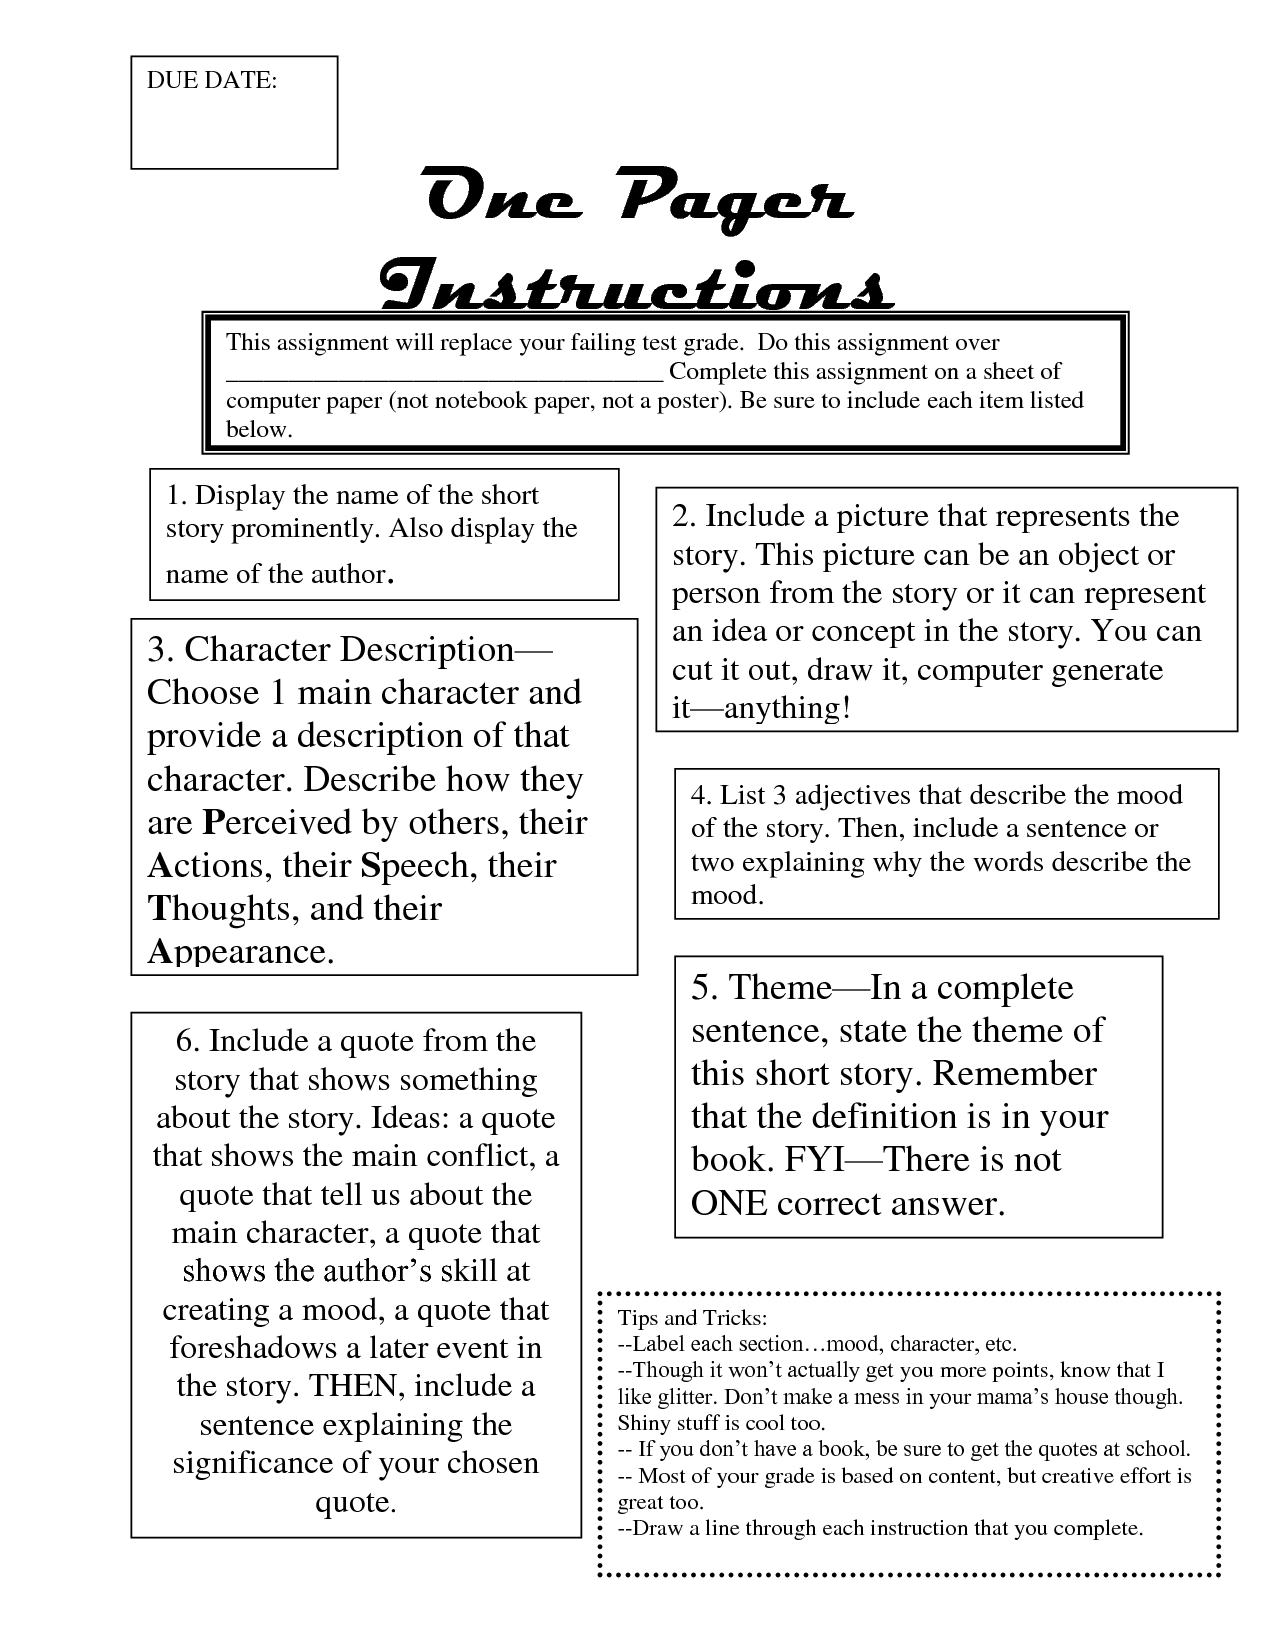 game instructions page ideas